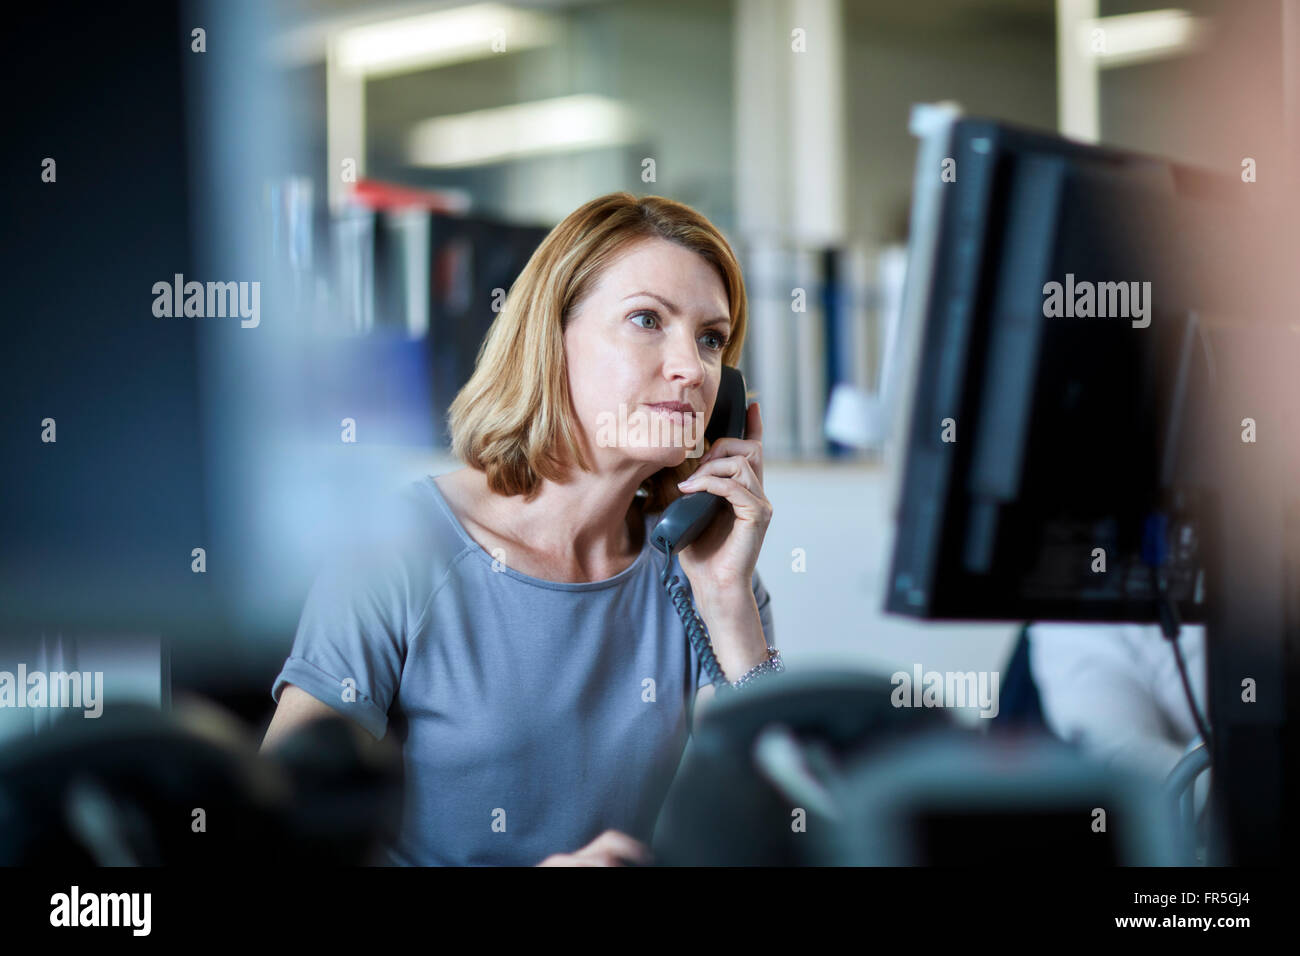 Businesswoman talking on telephone and working at computer - Stock Image